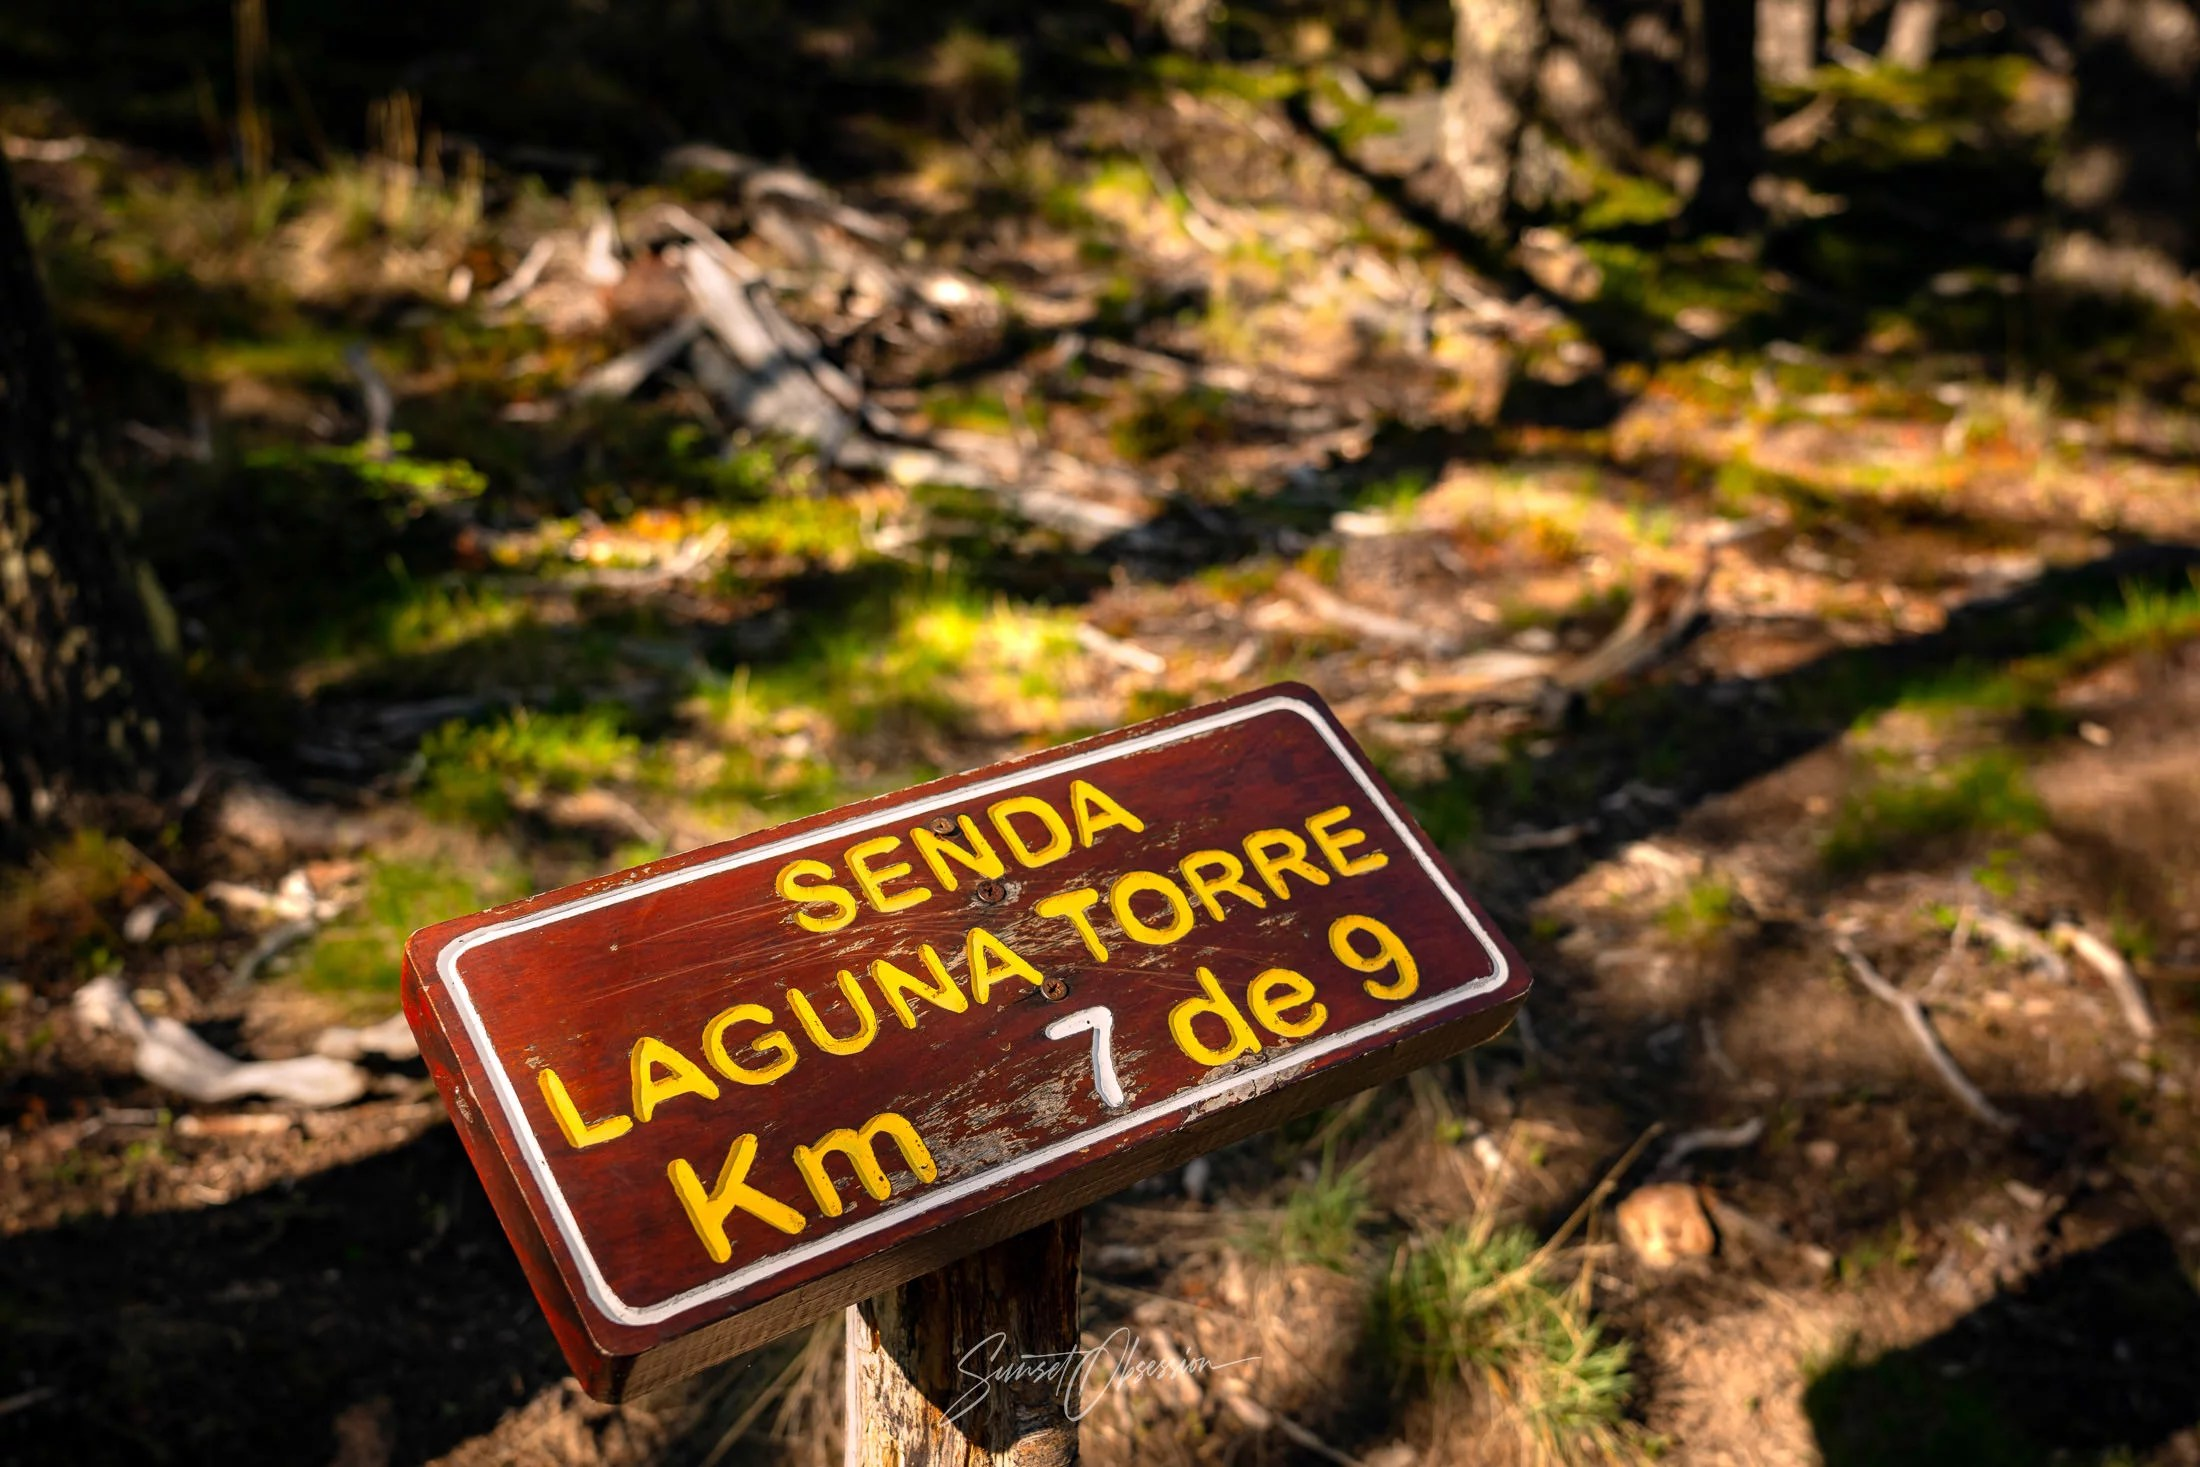 The route to Laguna Torre is well-marked